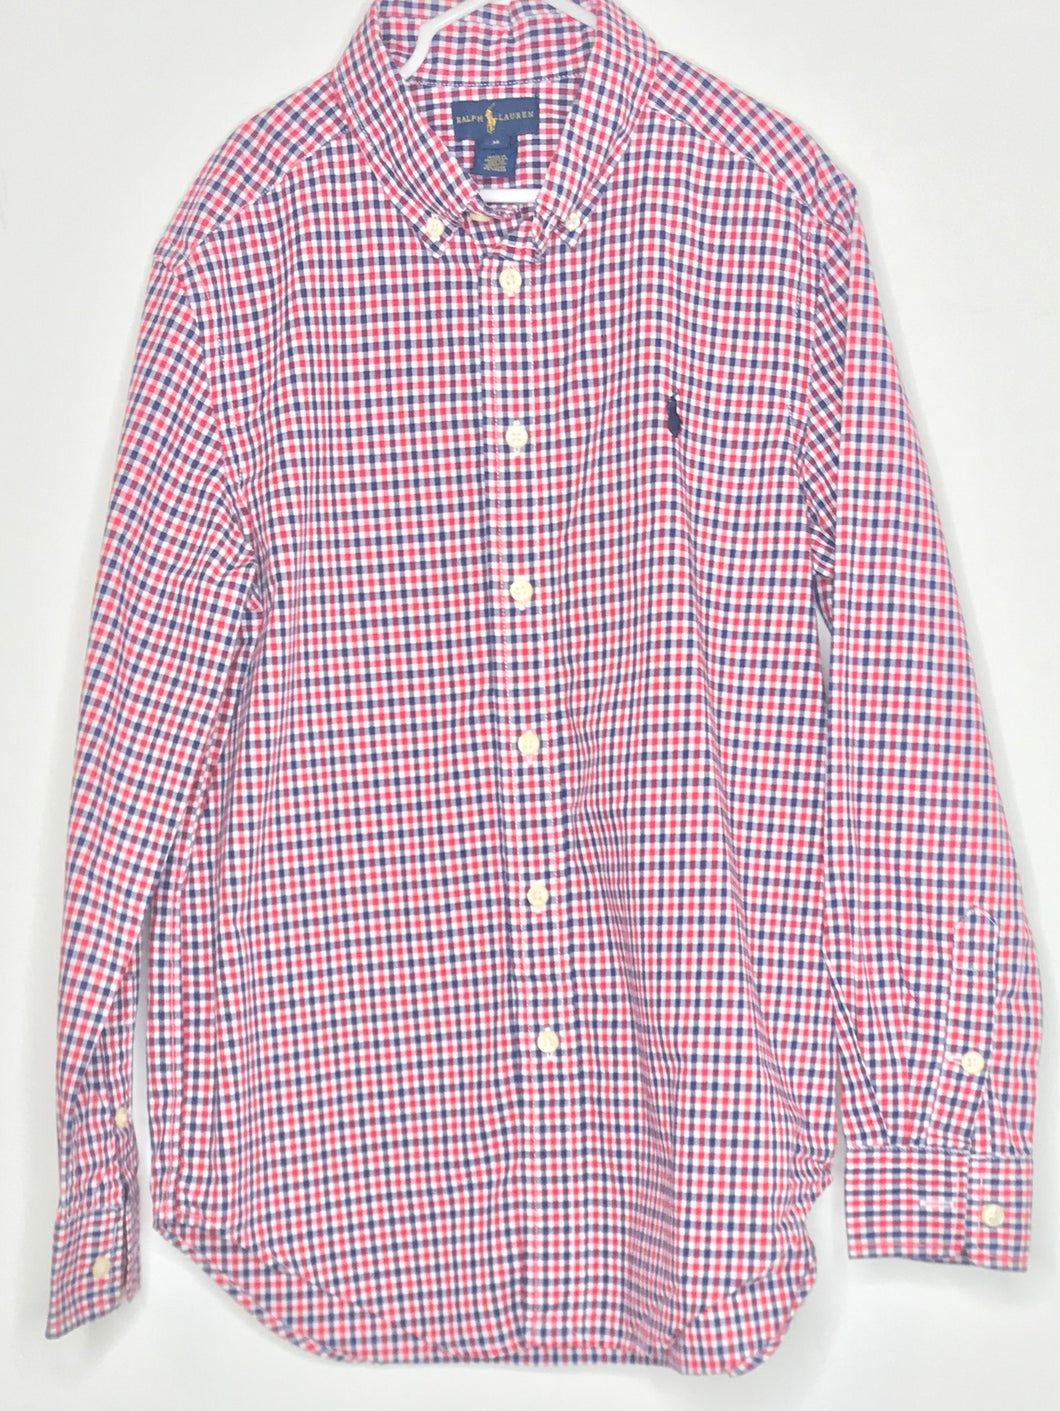 Ralph Lauren Check Shirt (gently loved) - 10/12